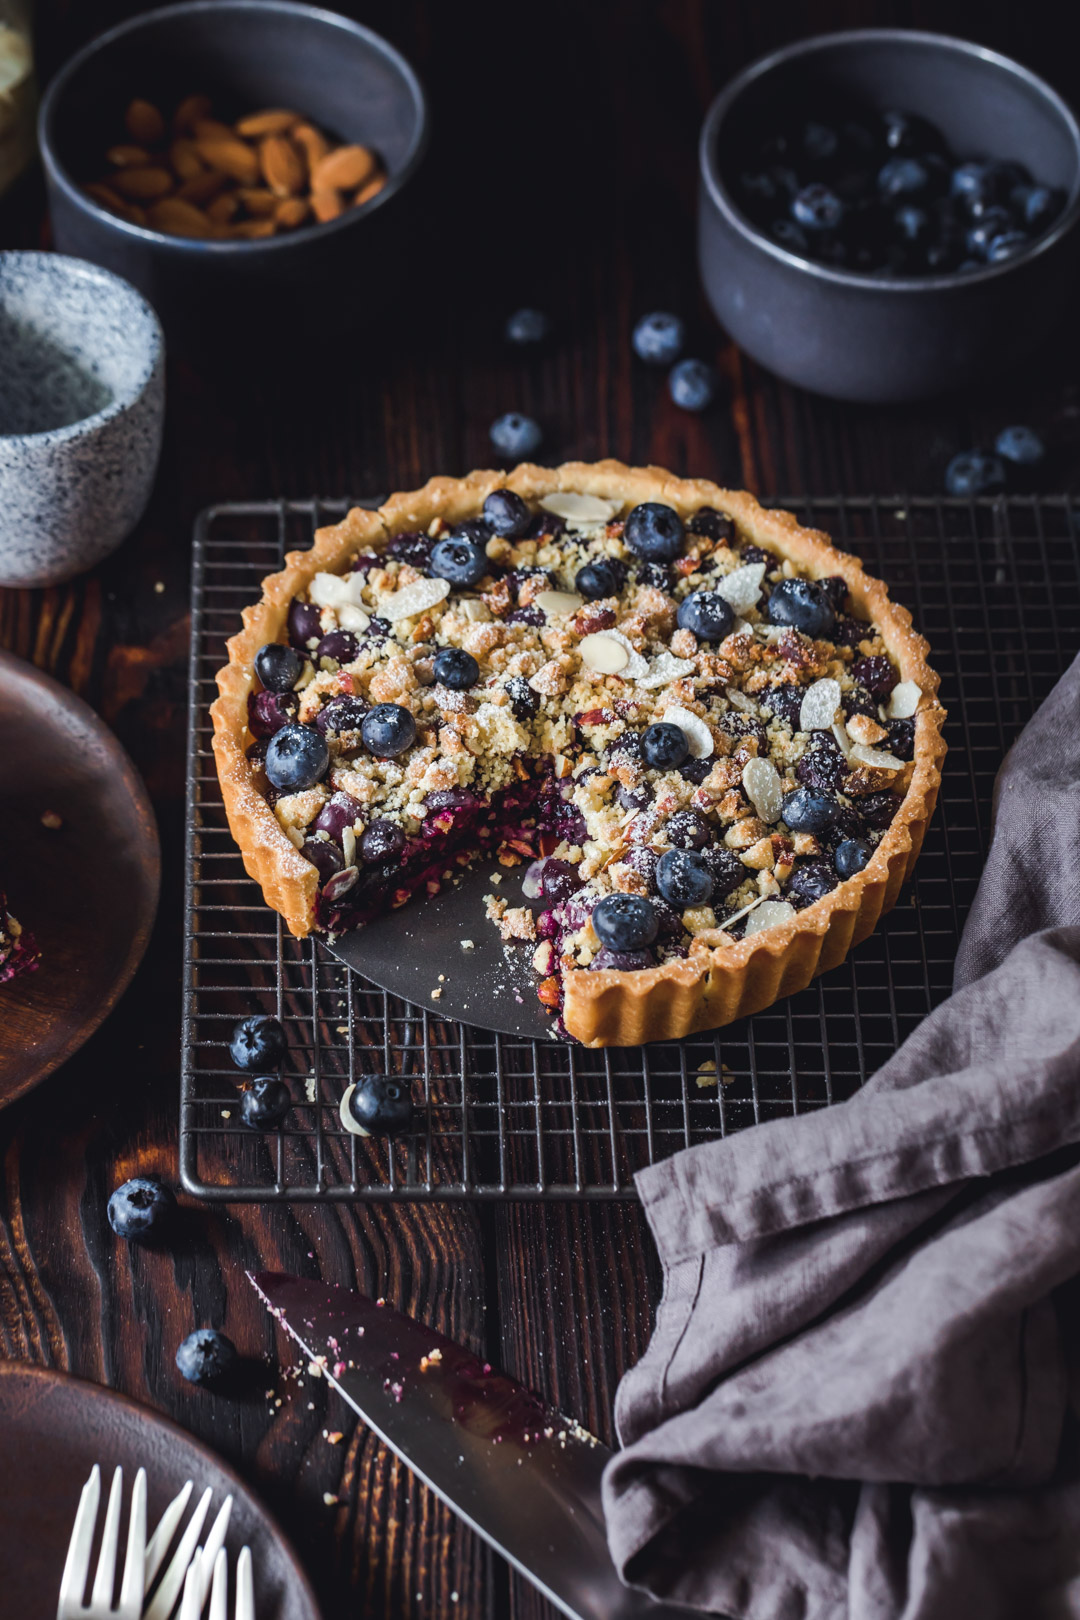 Gluten-free Blueberry Tart with Almond Crumble